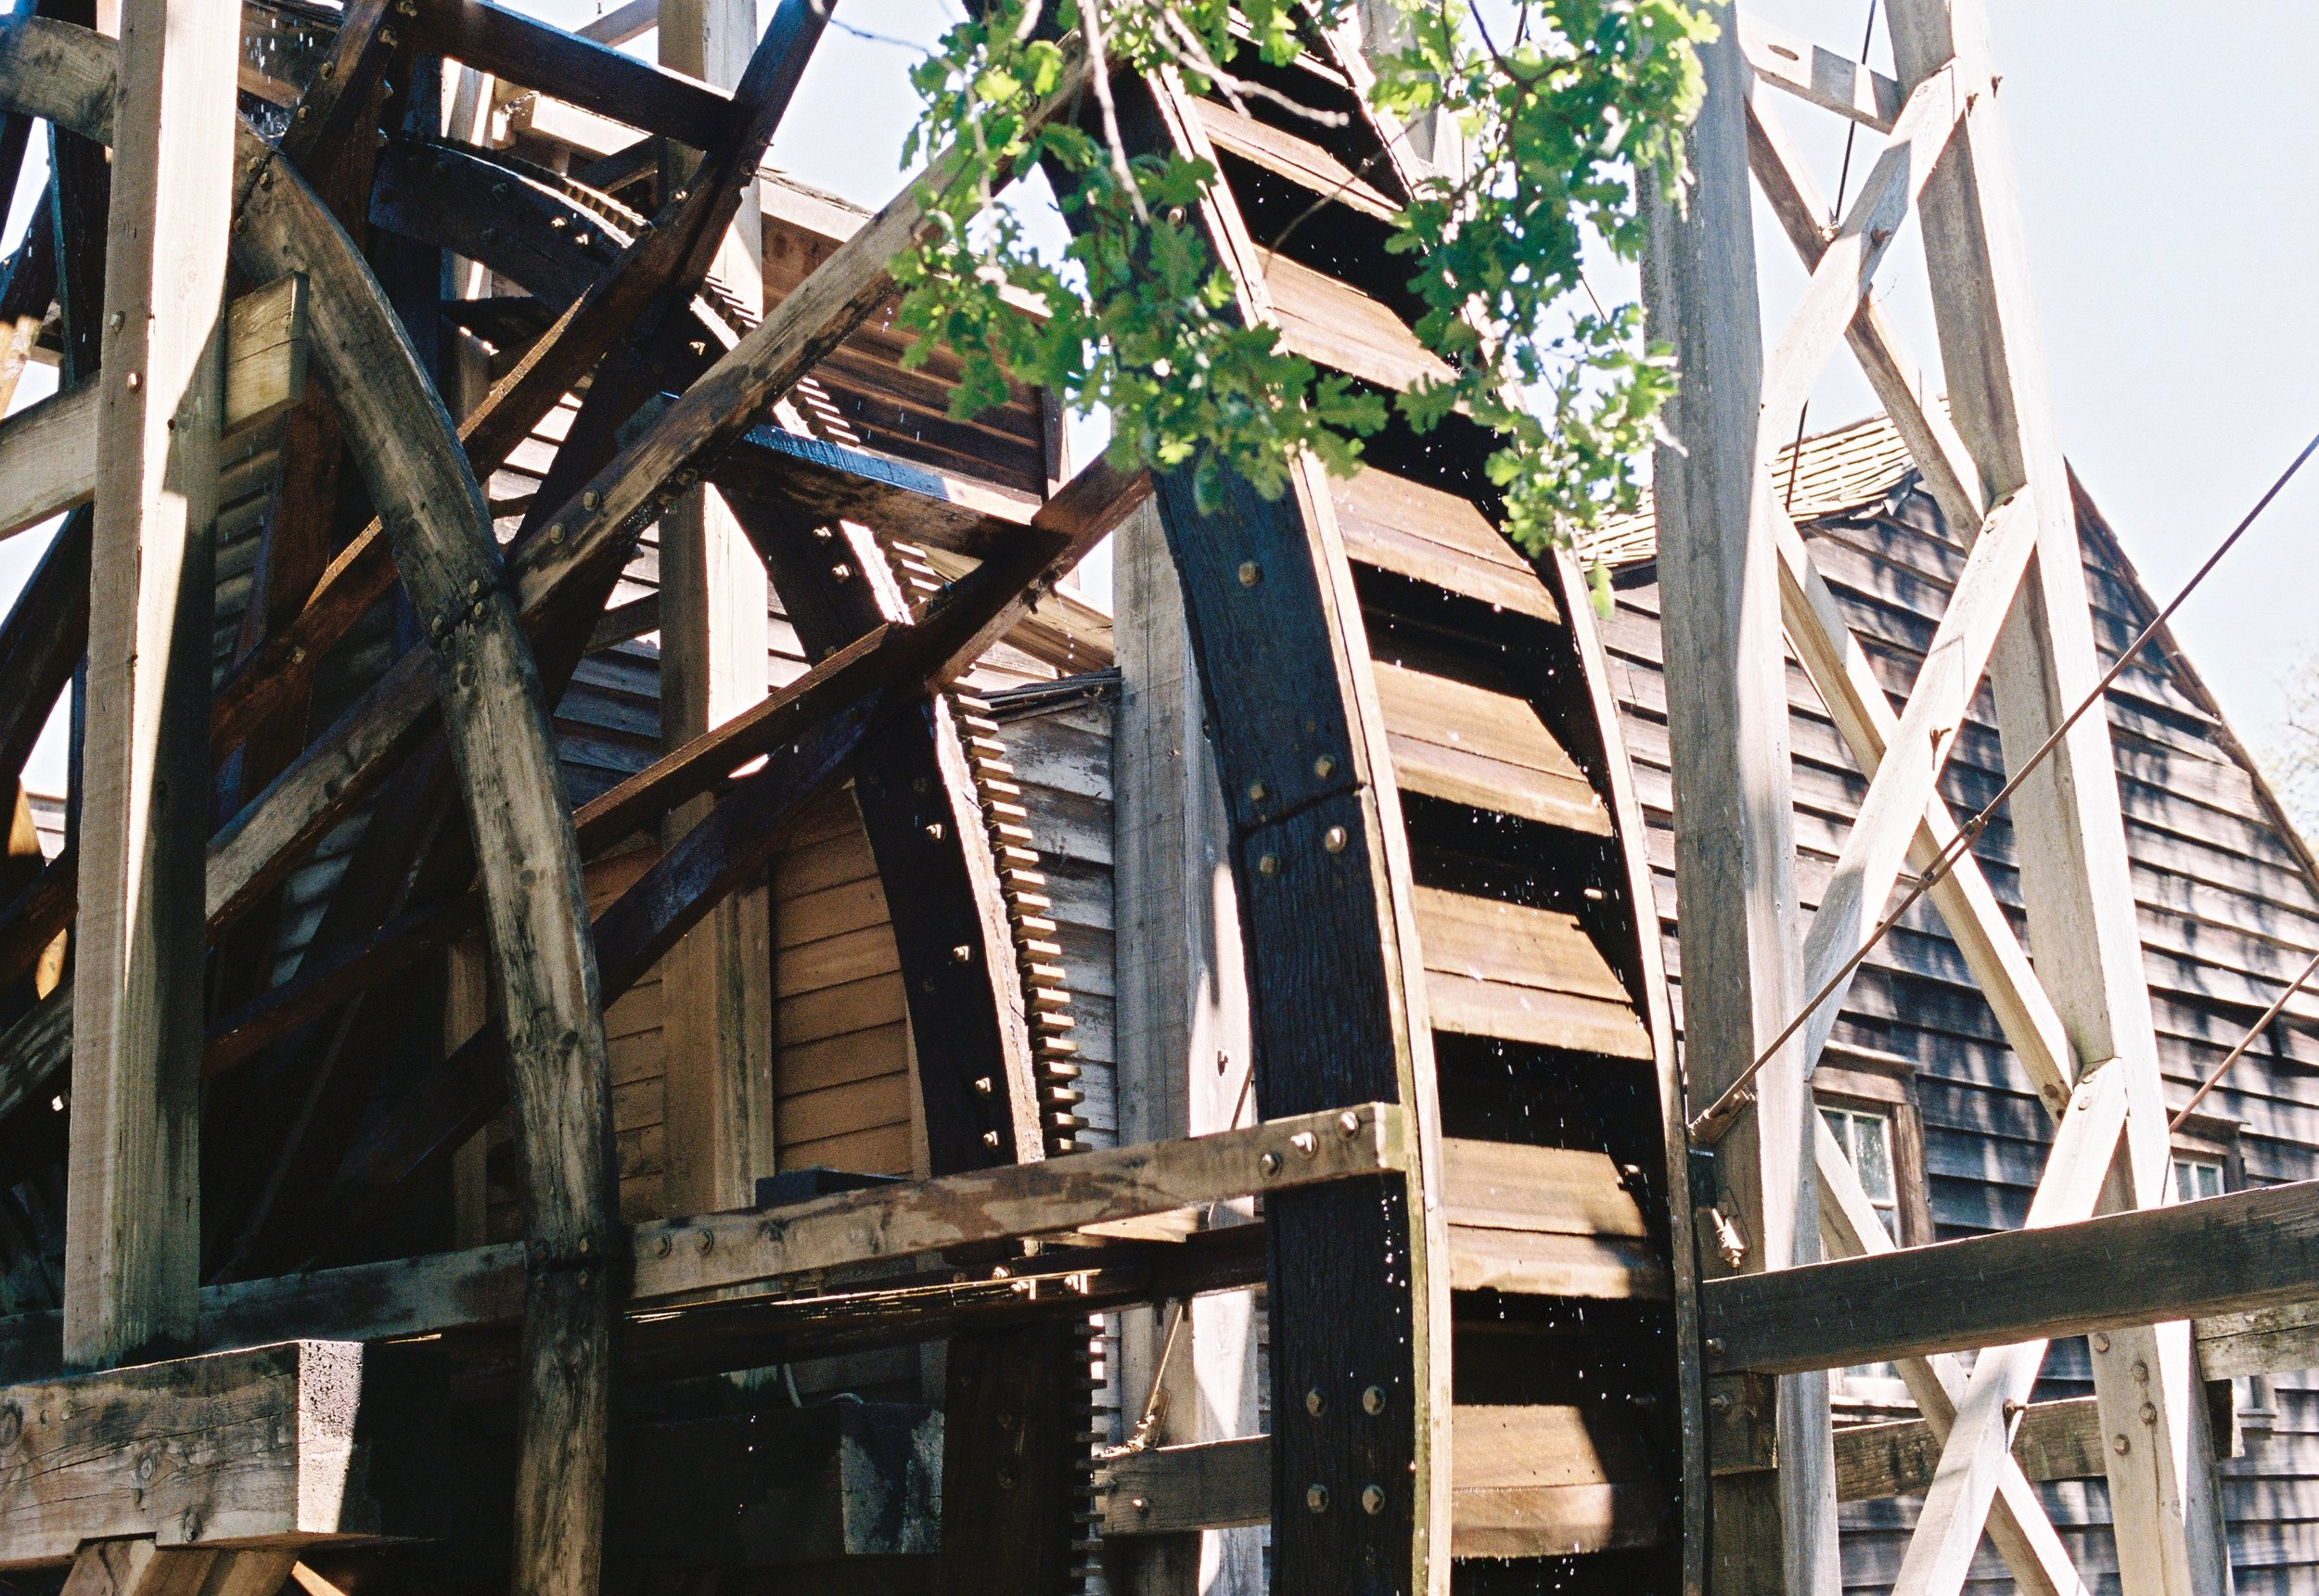 The water wheel at the Bale Grist Mill